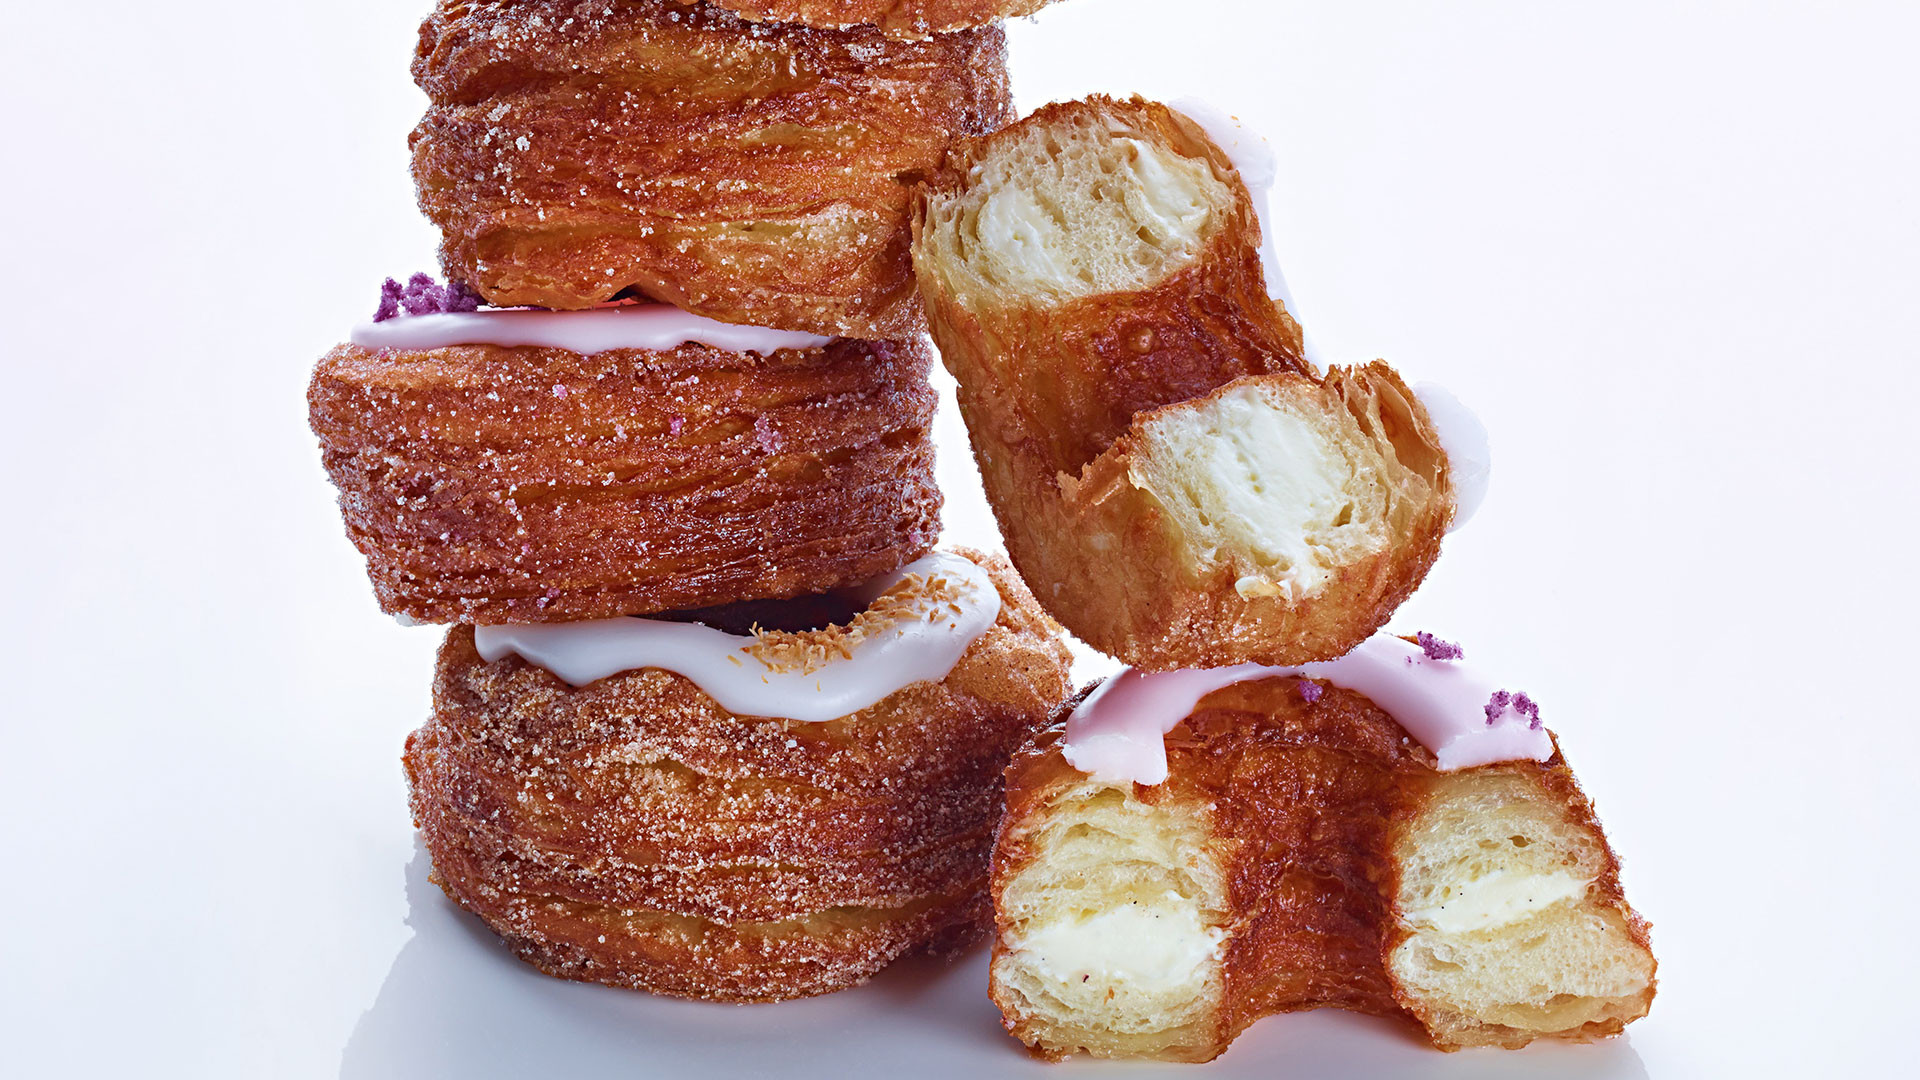 The legendary Cronut